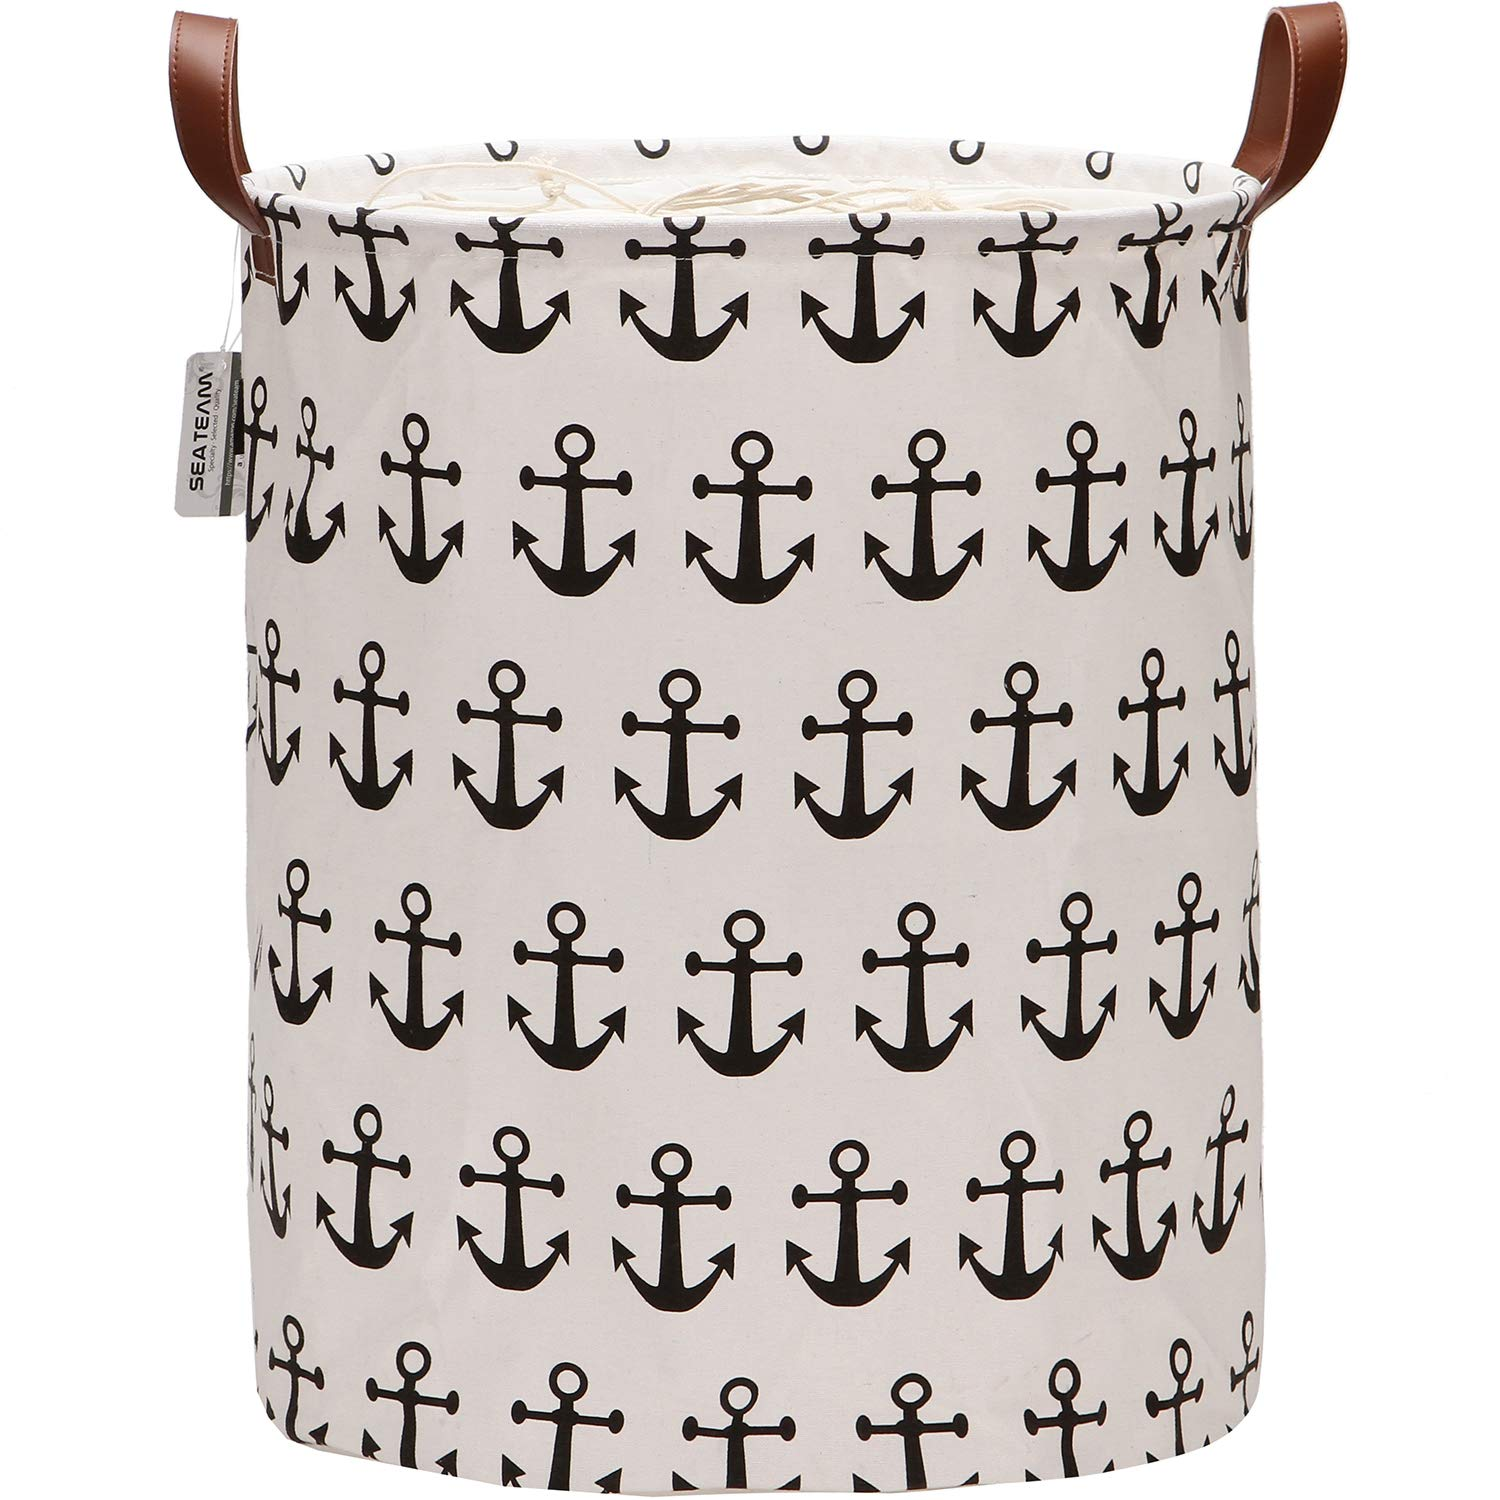 Sea Team Large Size Canvas Laundry Hamper Collapsible Storage Basket with Nautical Anchor Pattern, 19.7 by 15.7 inches, Black